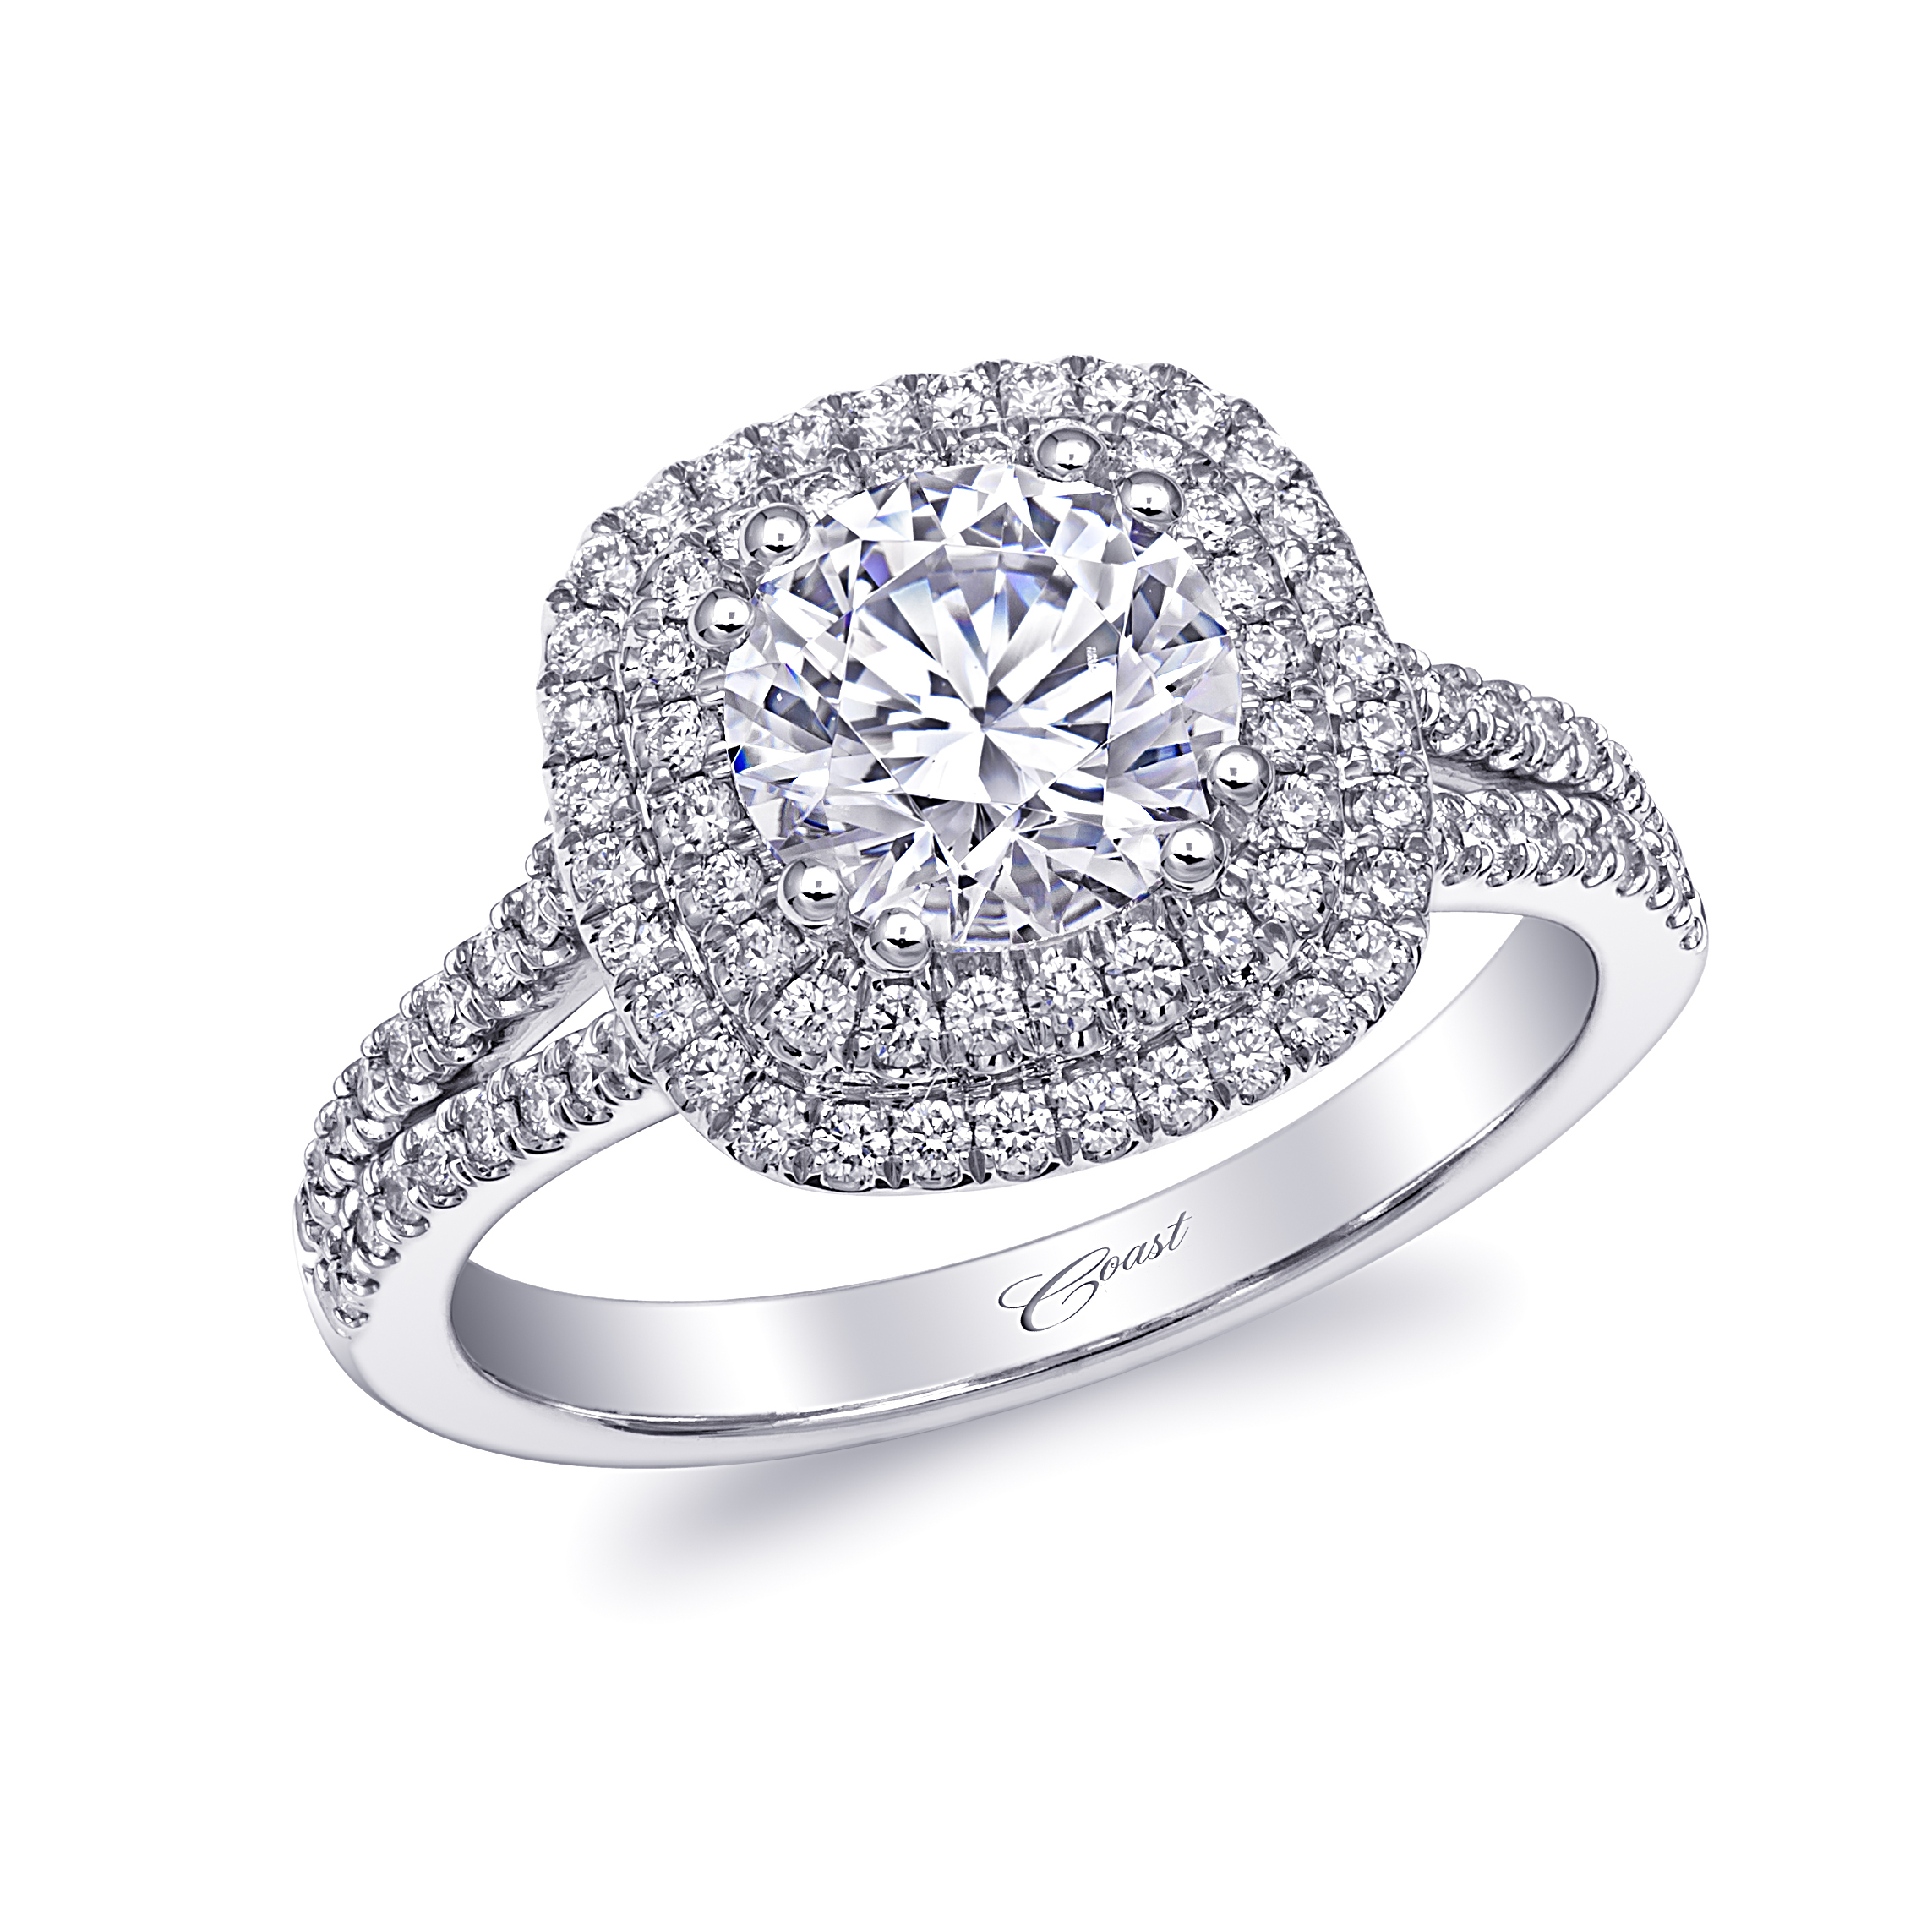 Charisma Engagement Ring - Double Halo Split Shank